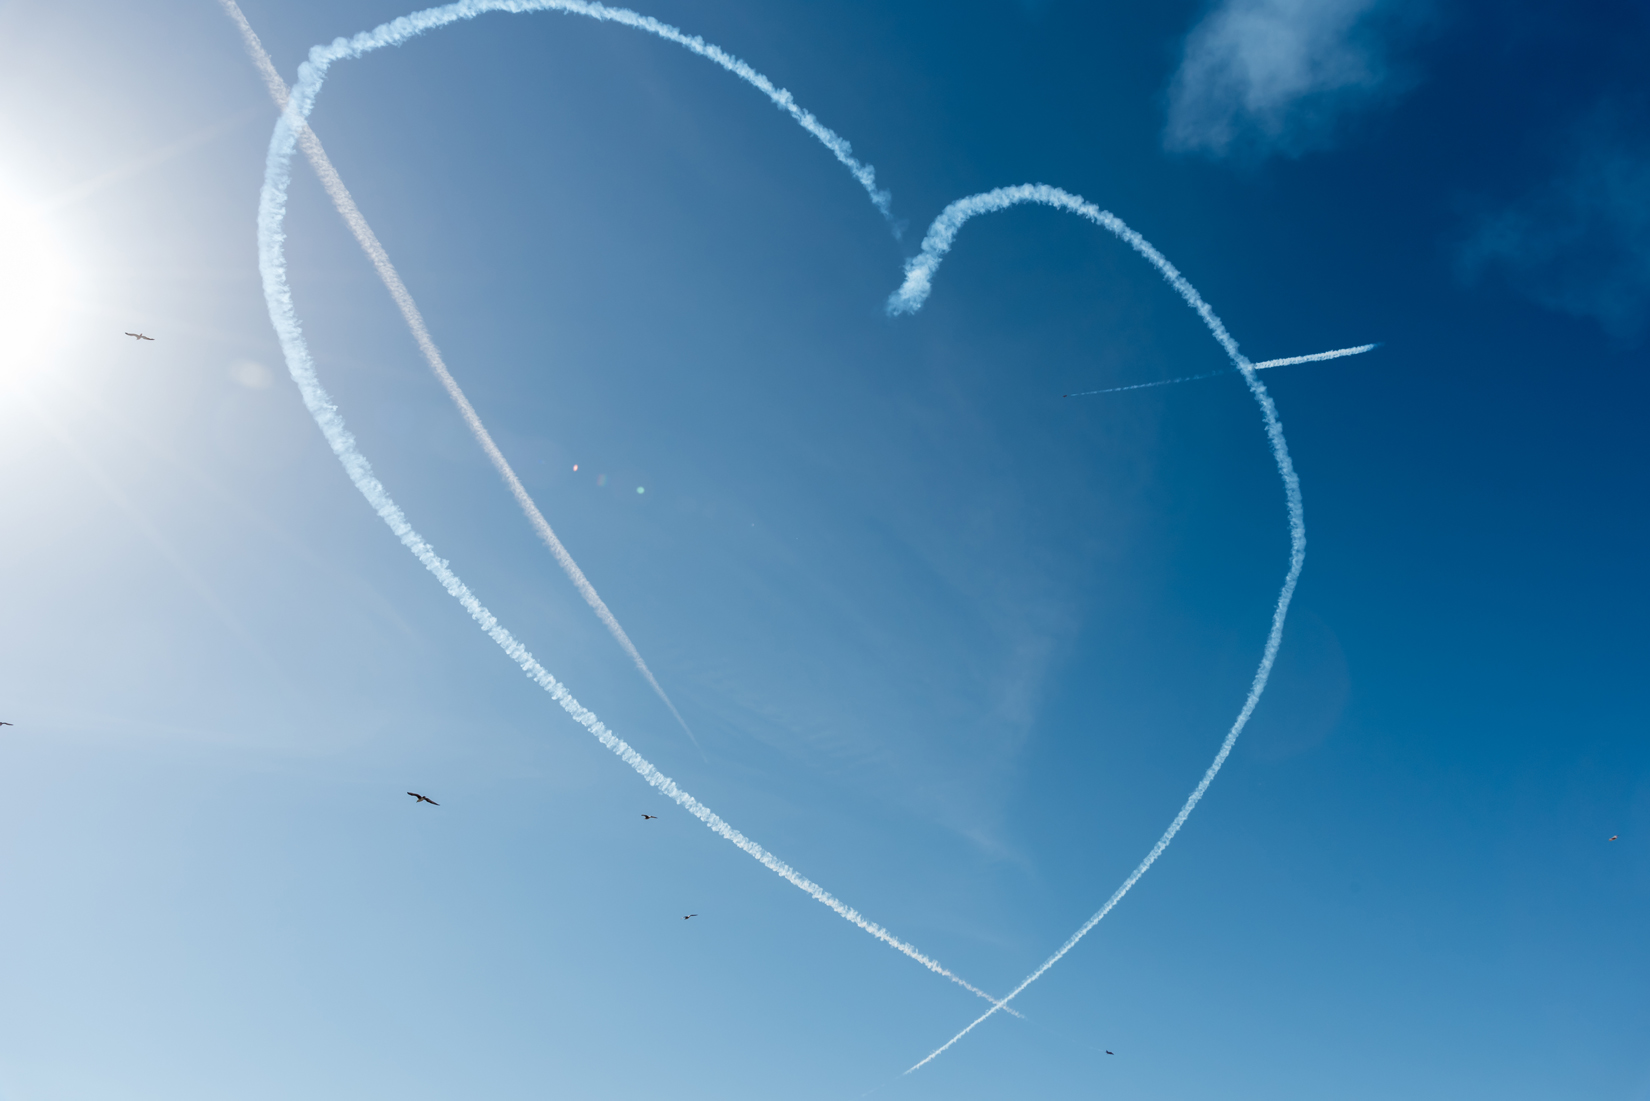 The Red Arrows' Heart and Spear display